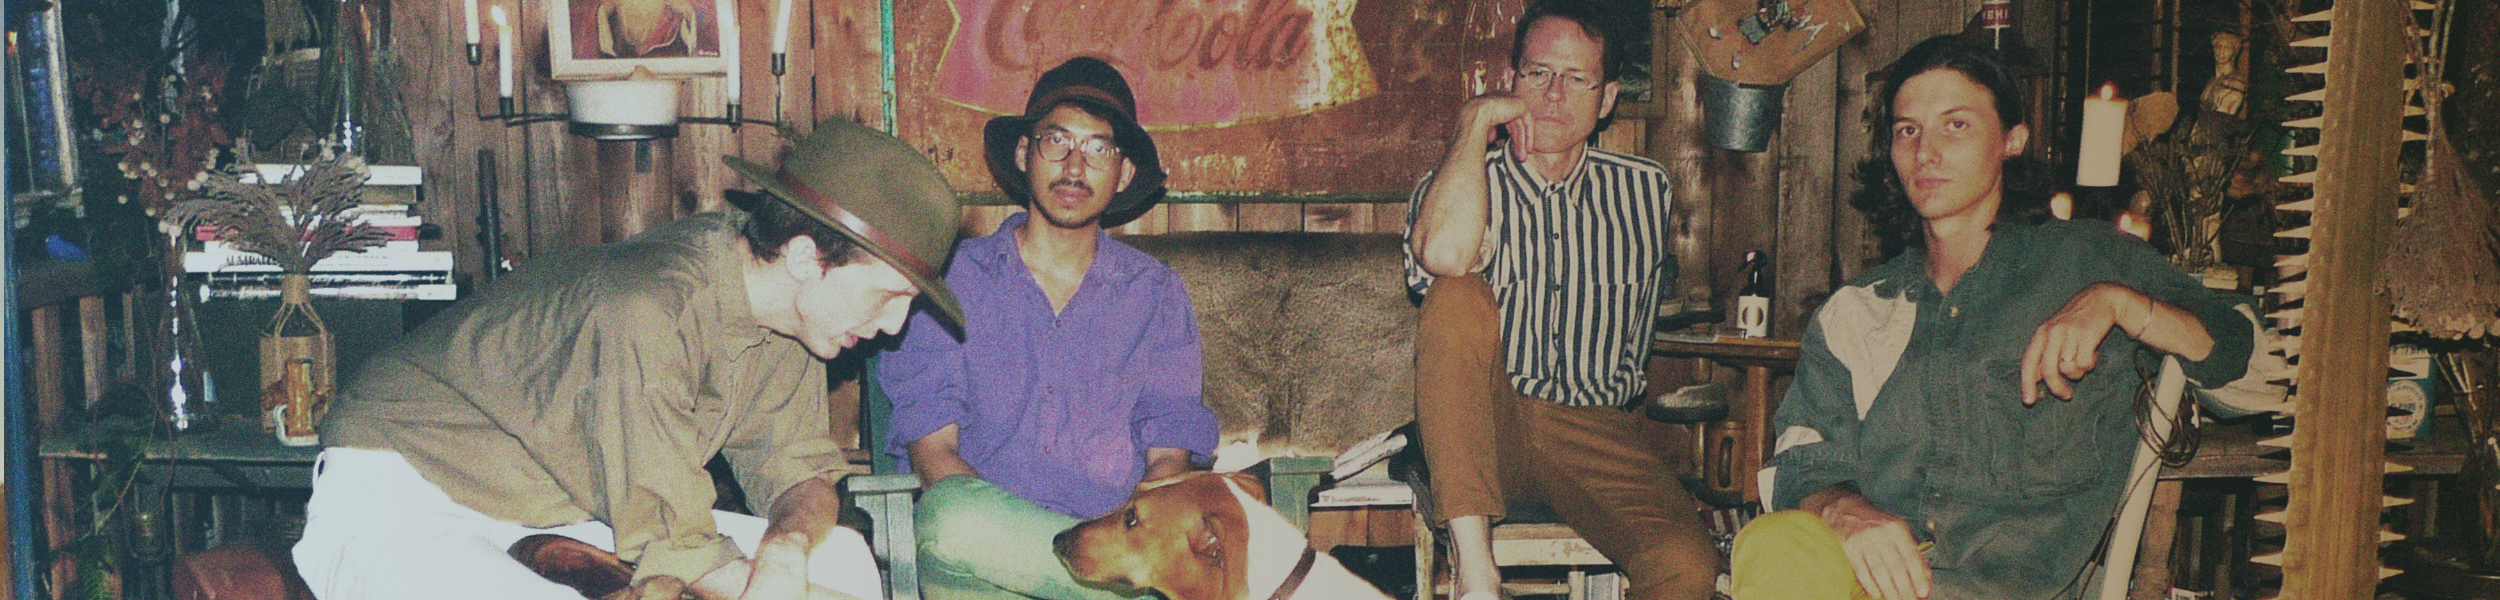 Deerhunter - The Year In Review: Deerhunter